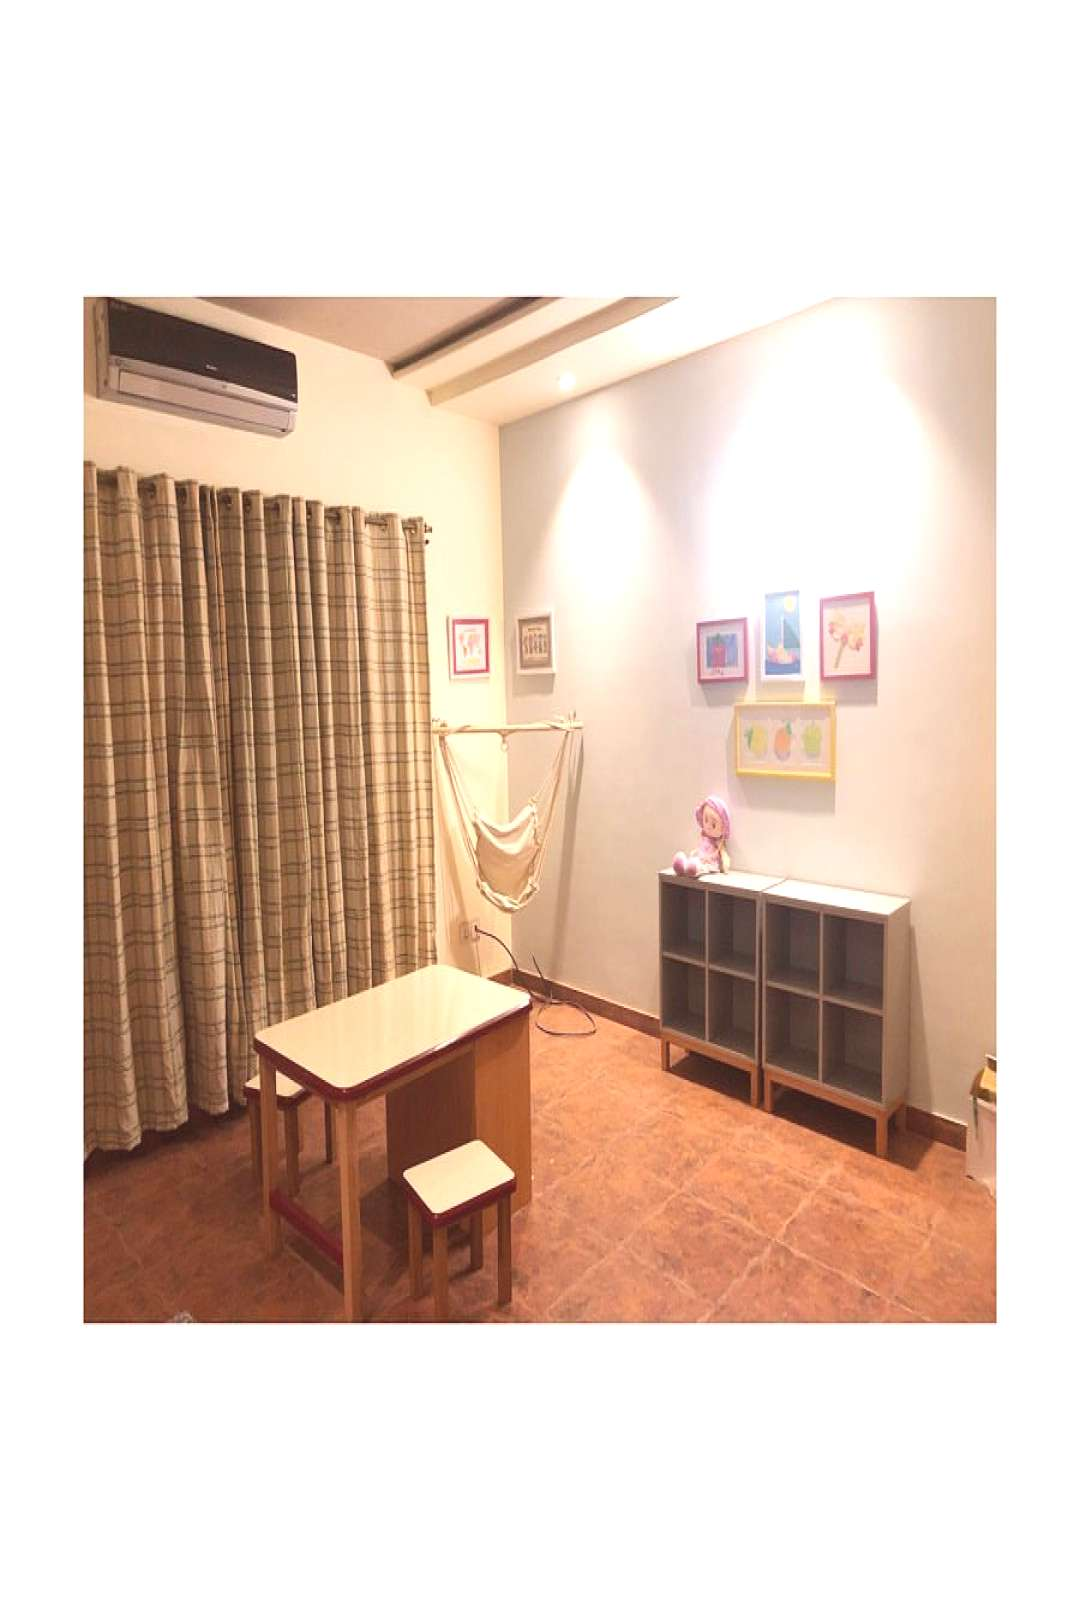 Kids activity room, swipe to see the before amp after shots of the